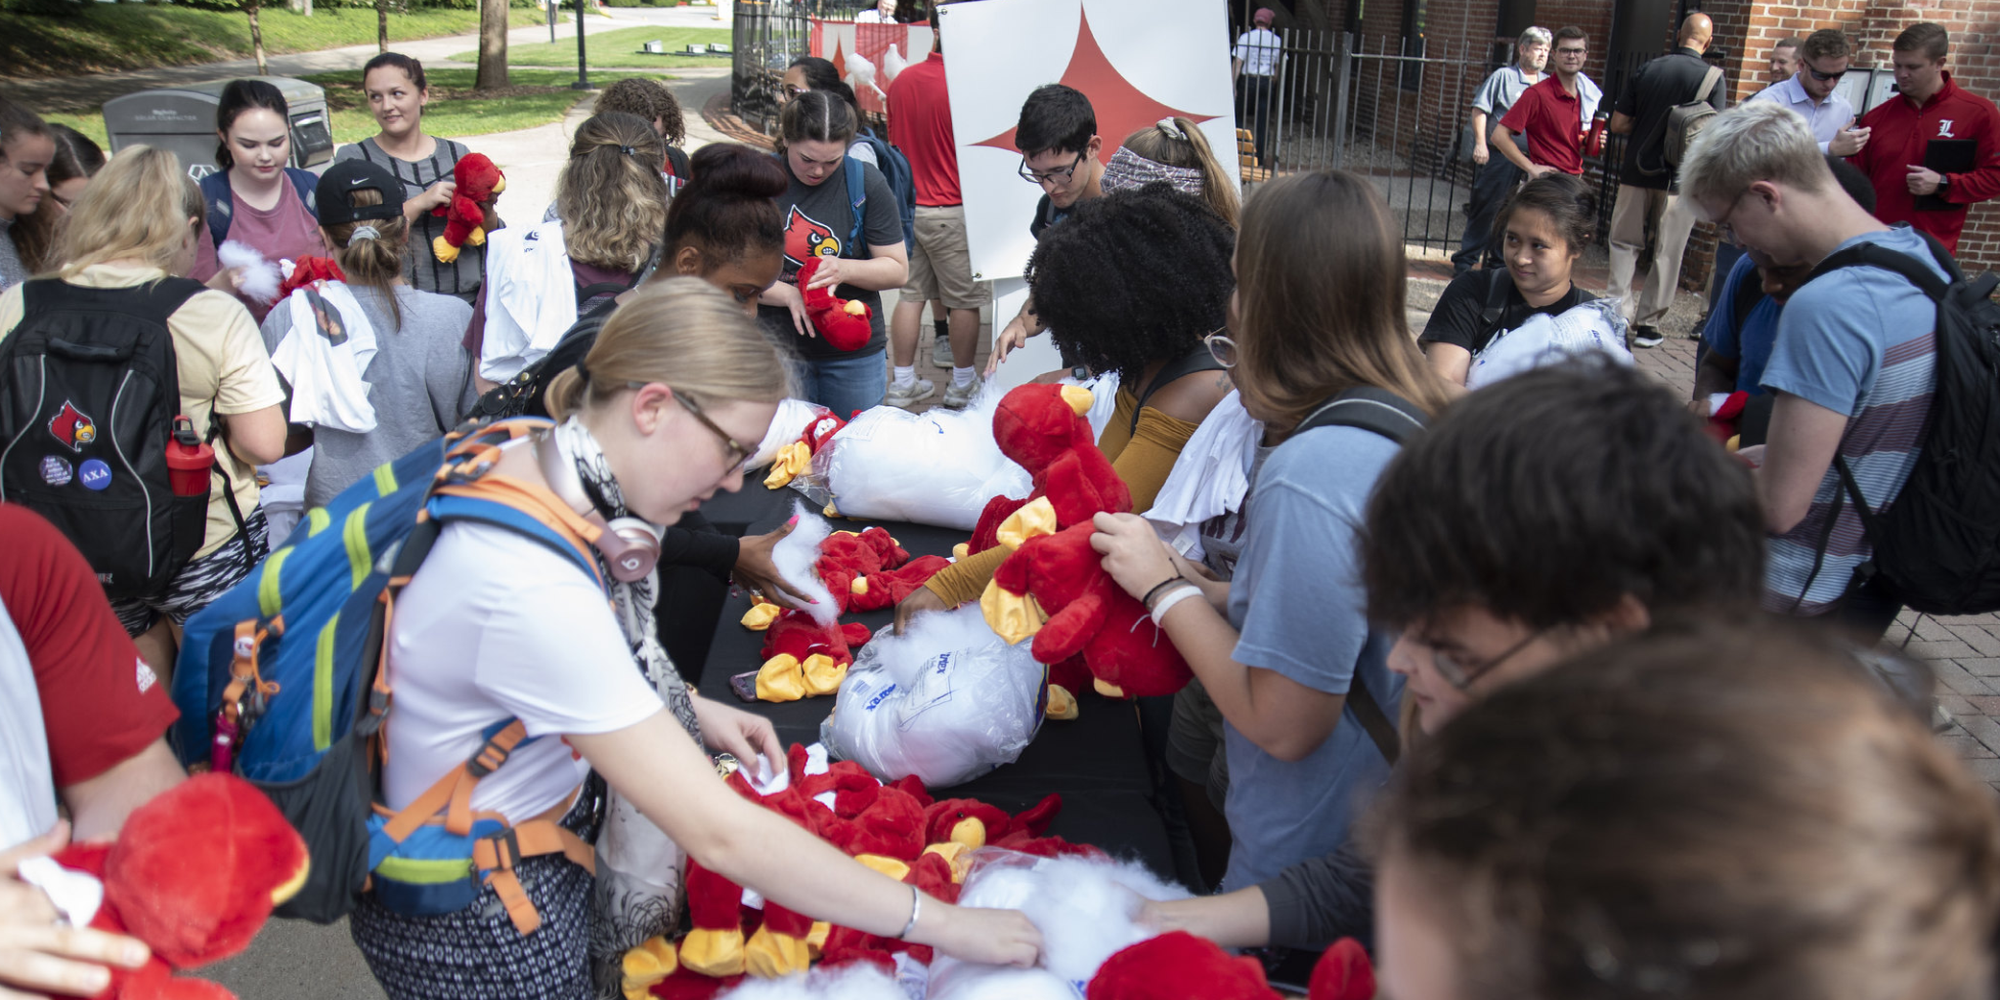 Students gathered around a table stuffing plush cardinal birds